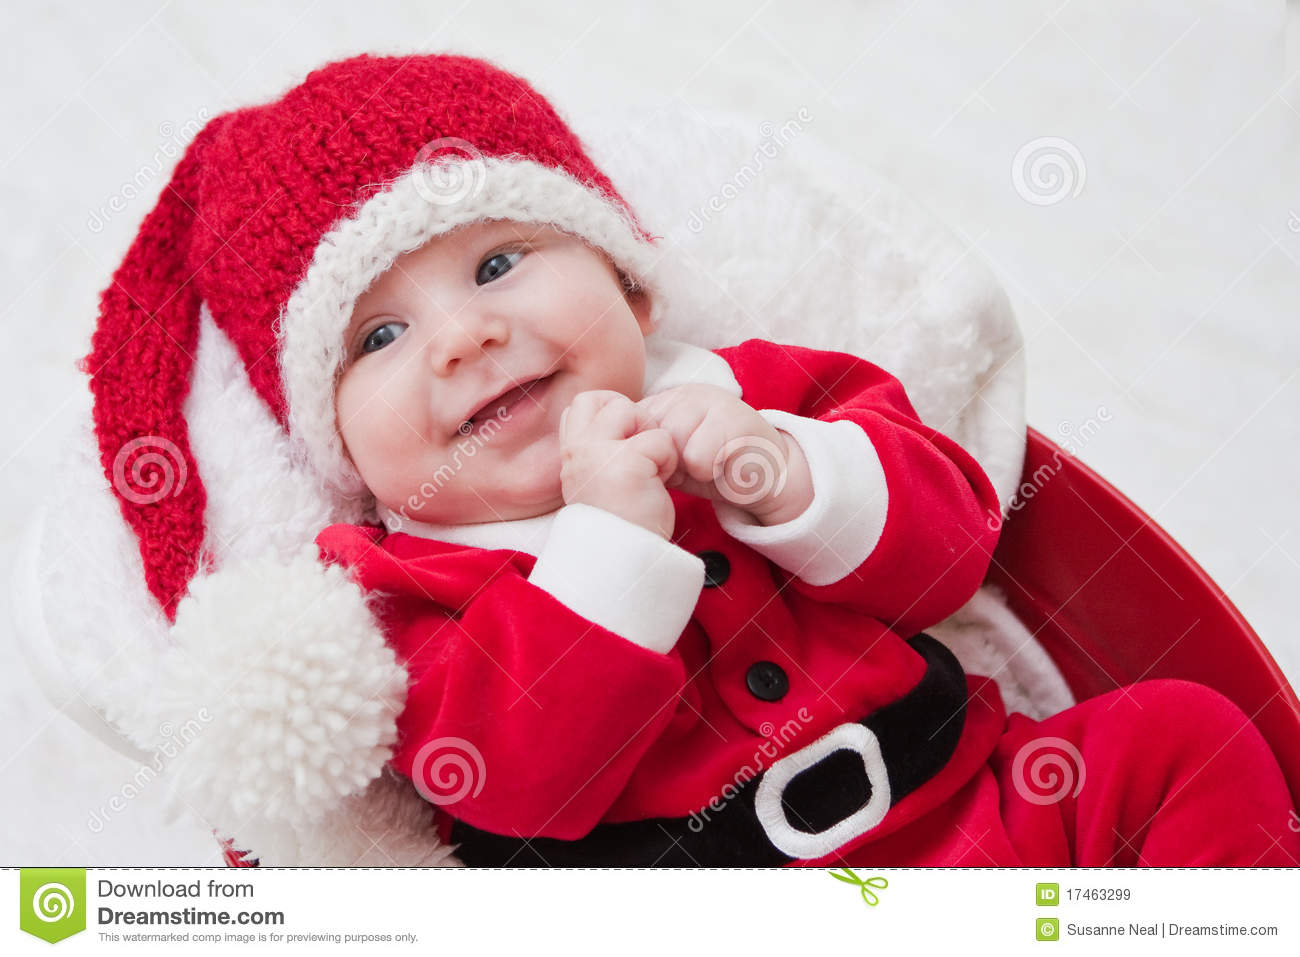 Santa Claus Girl Wallpaper Smiling Baby In Santa Cap And Outfit Royalty Free Stock